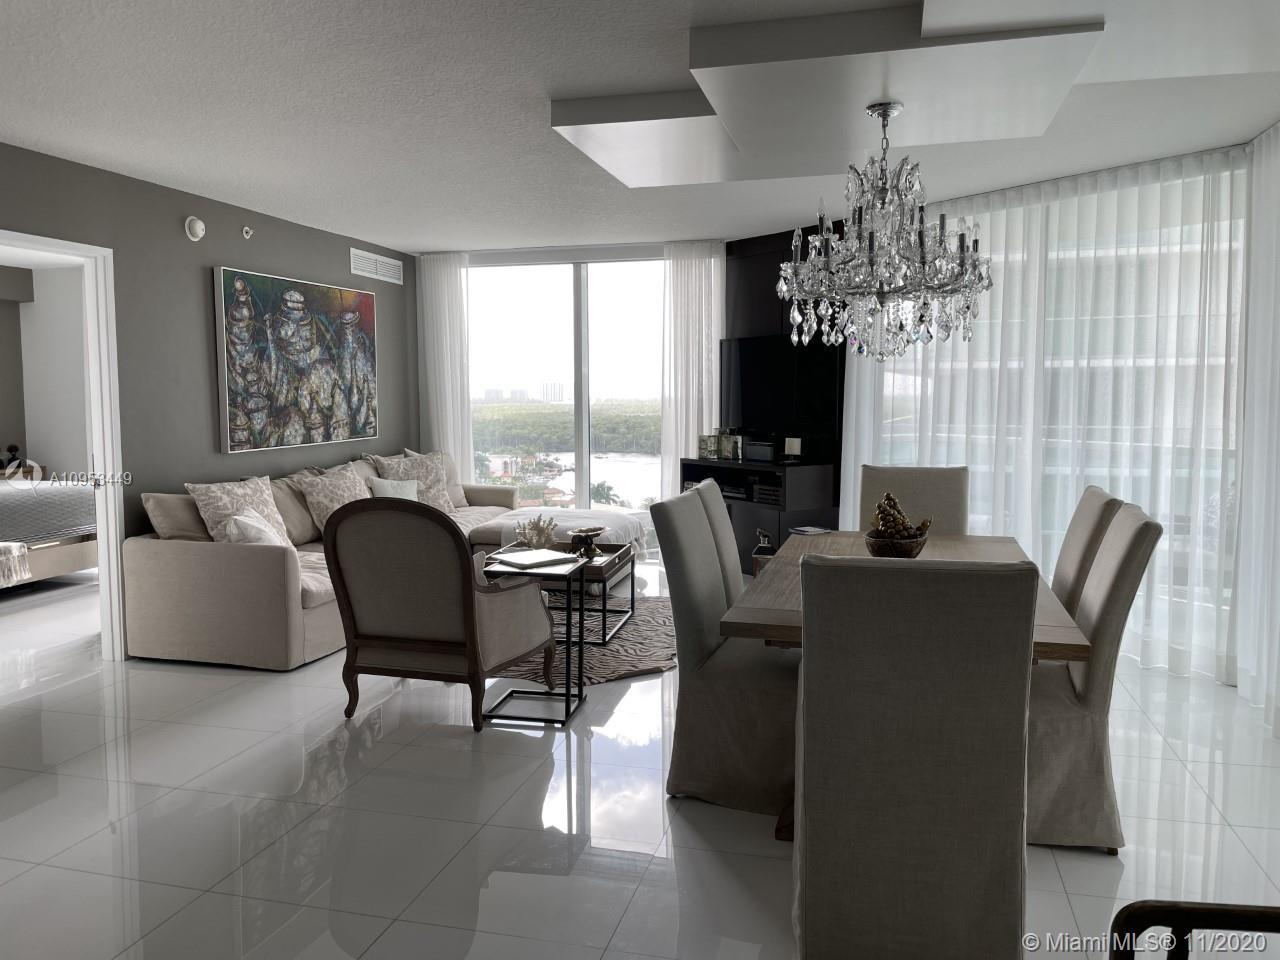 Location location location!!! Beautiful water views from living rooms and master bedroom, 3 Bed/2 Ba